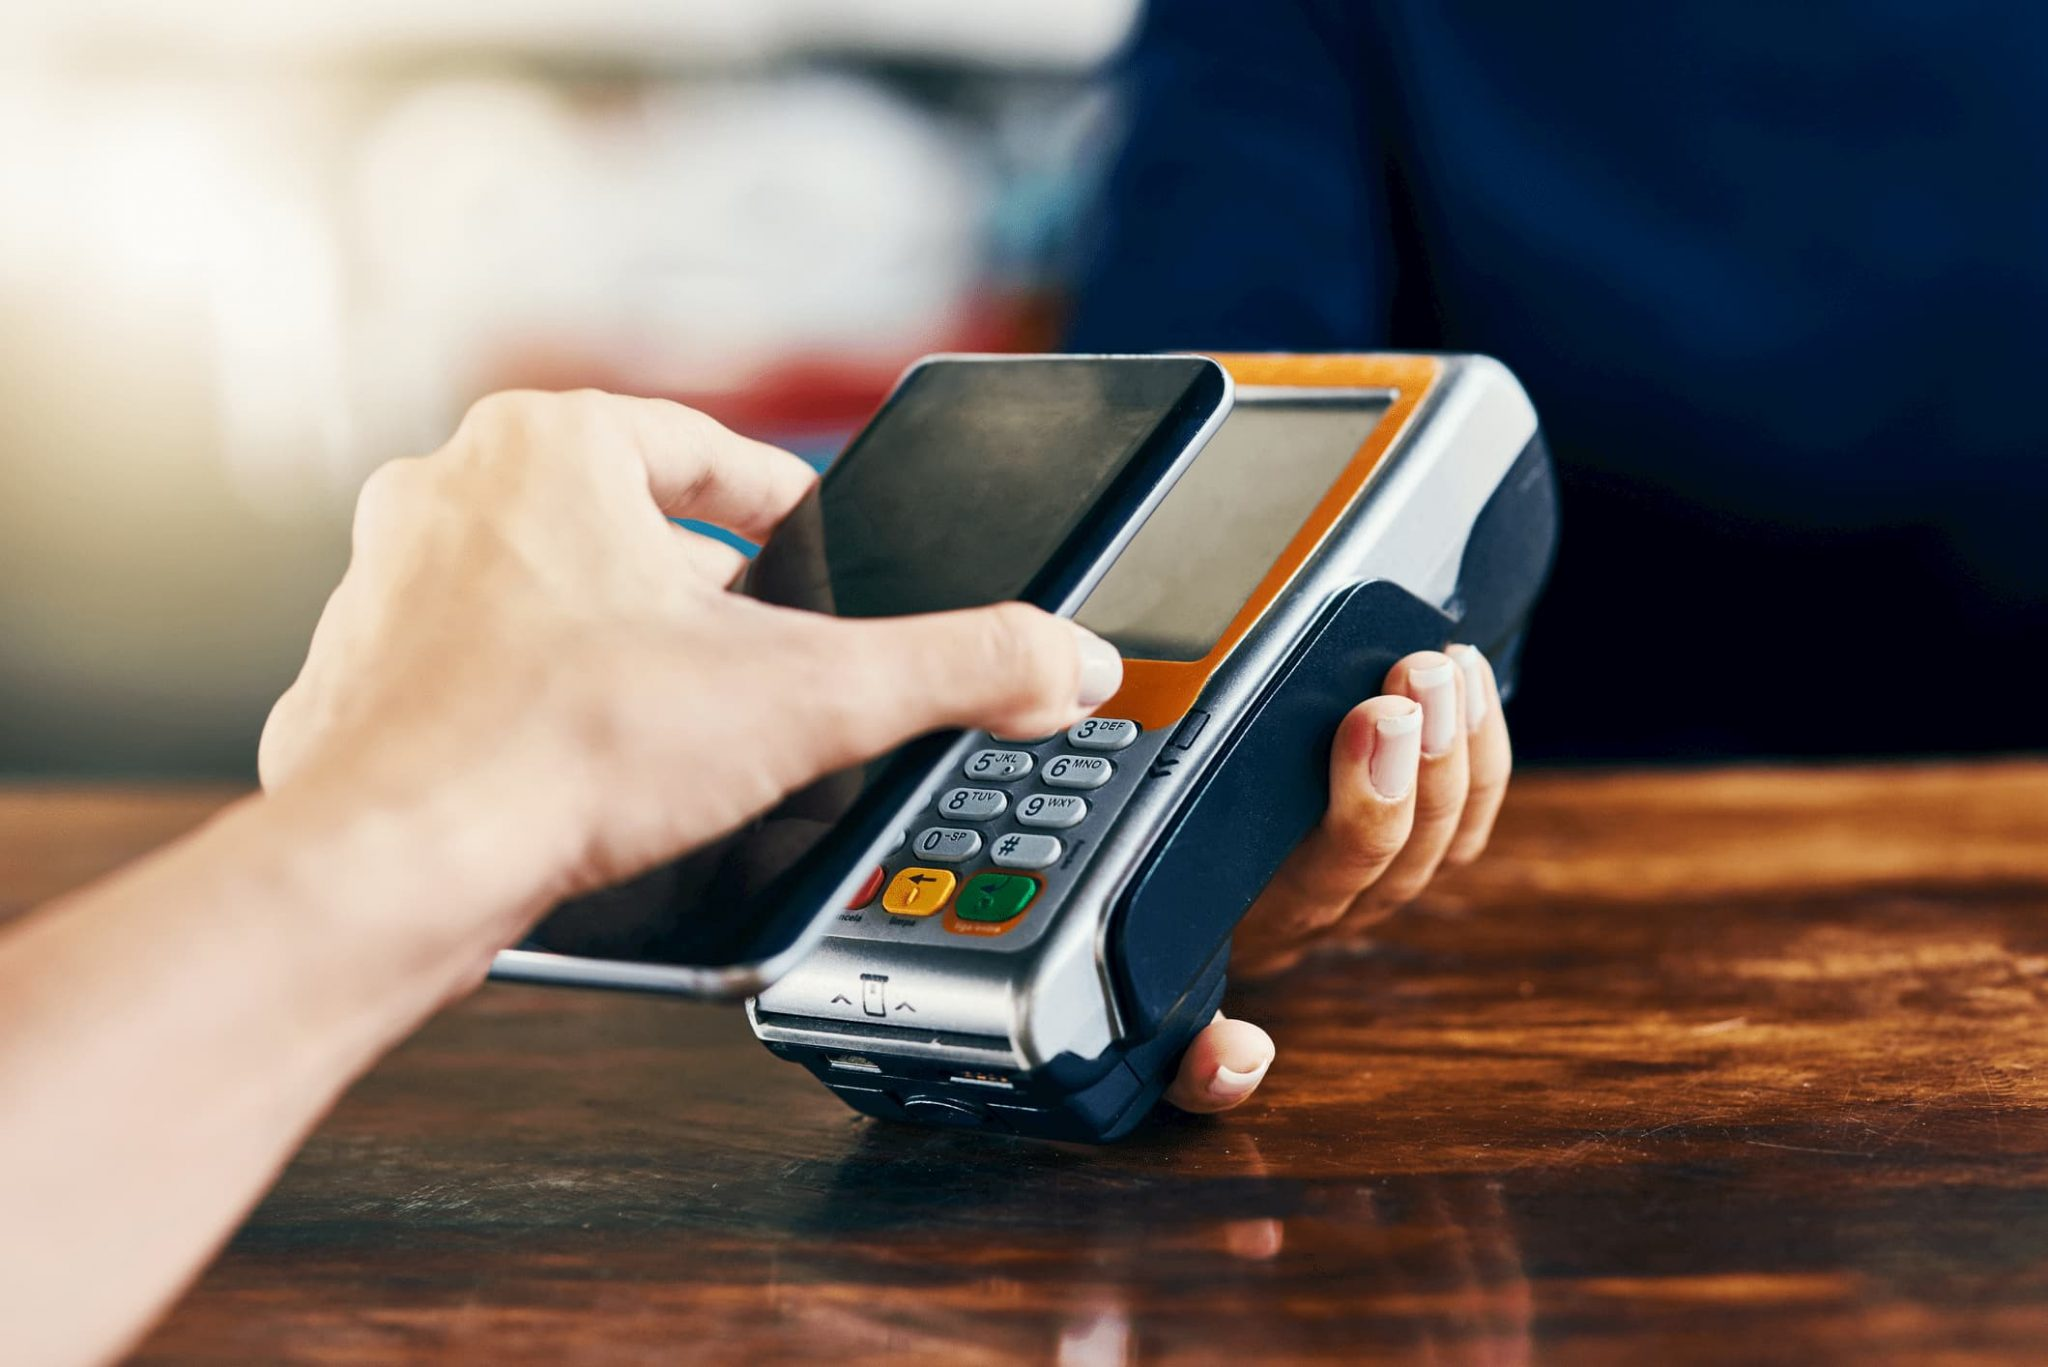 Payments—an industry undergoing radical change